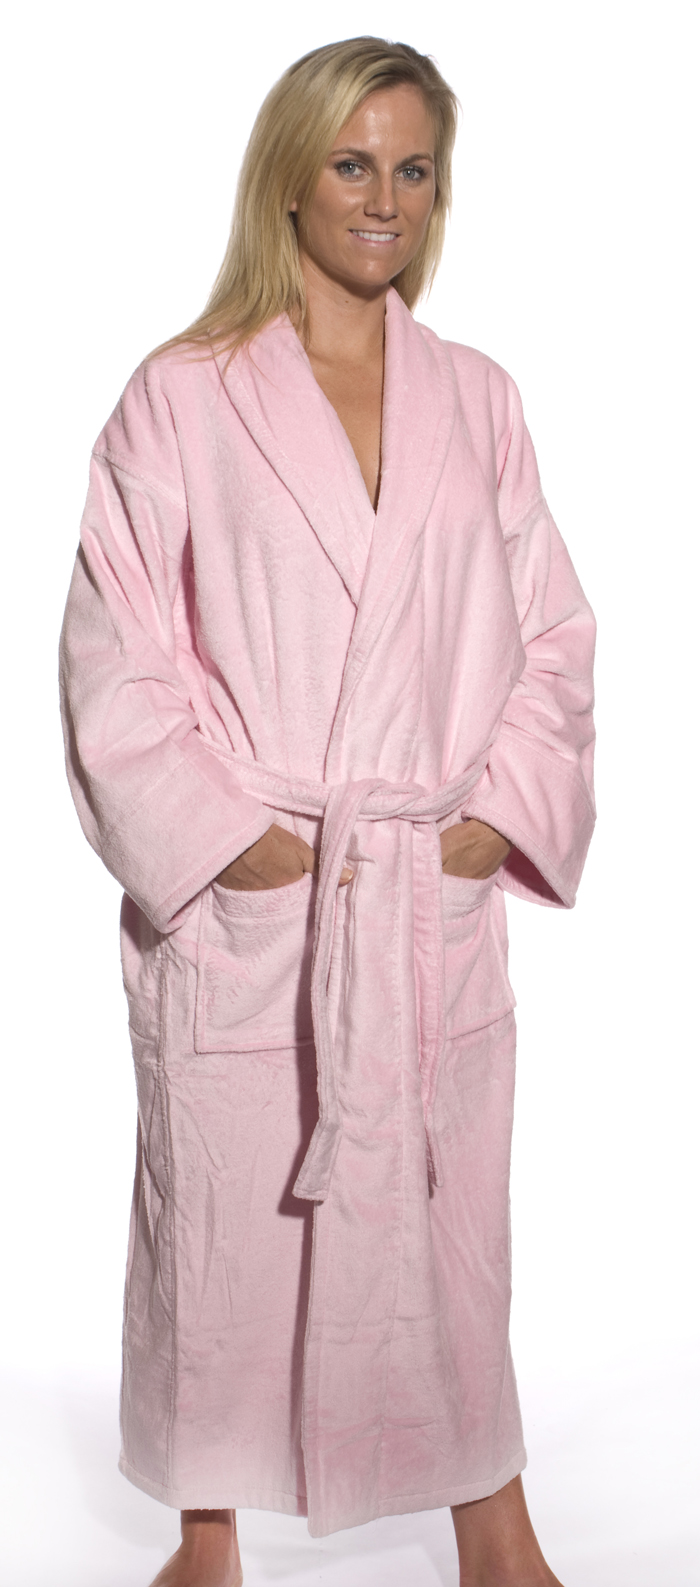 cheap bathrobes, hooded bathrobes for men, hooded bathrobes, mens black bathrobe